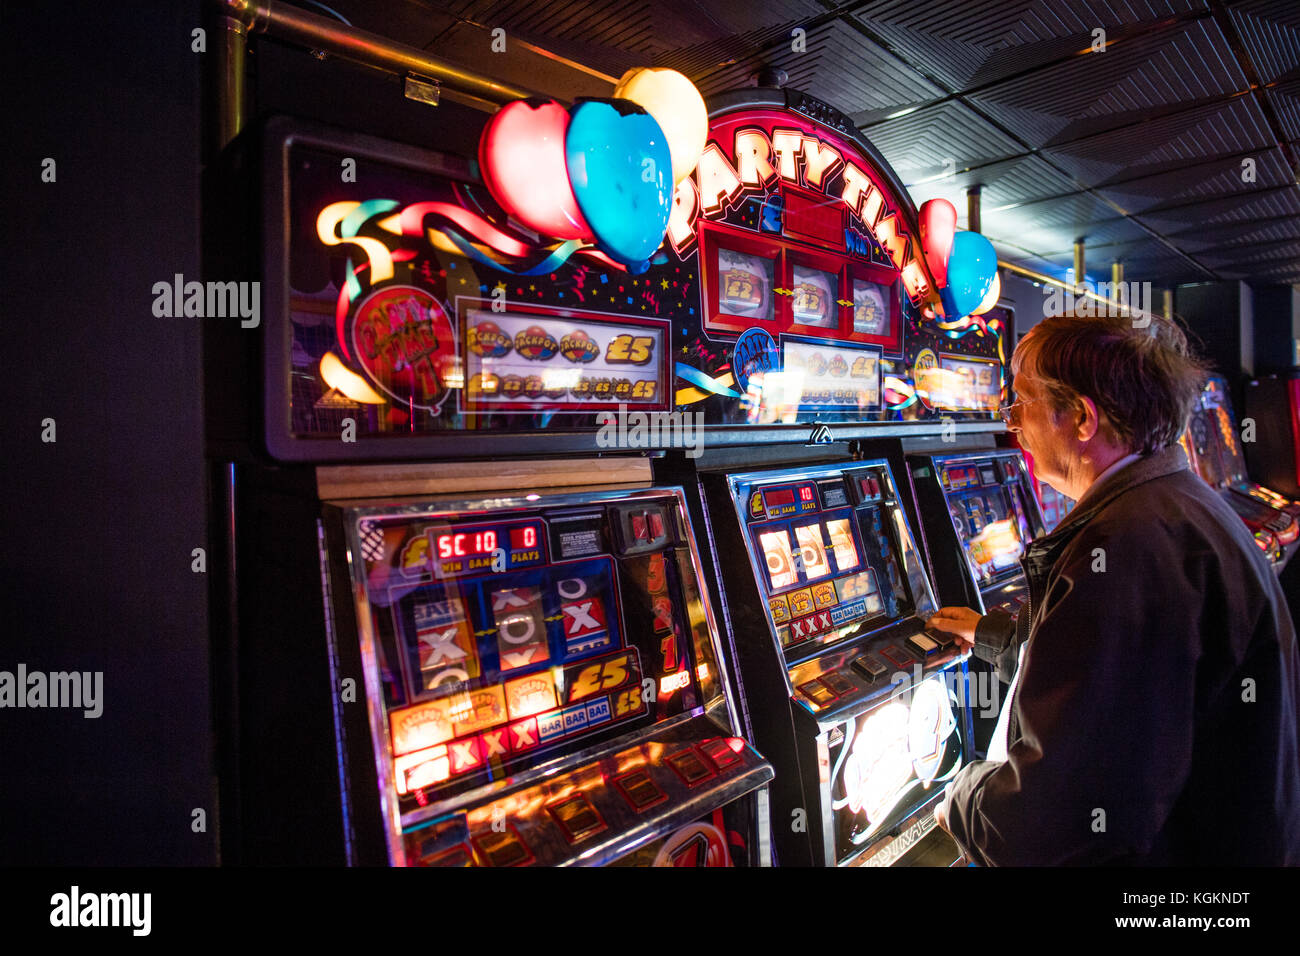 One Armed Bandit Fruit Machine High Resolution Stock Photography And Images Alamy